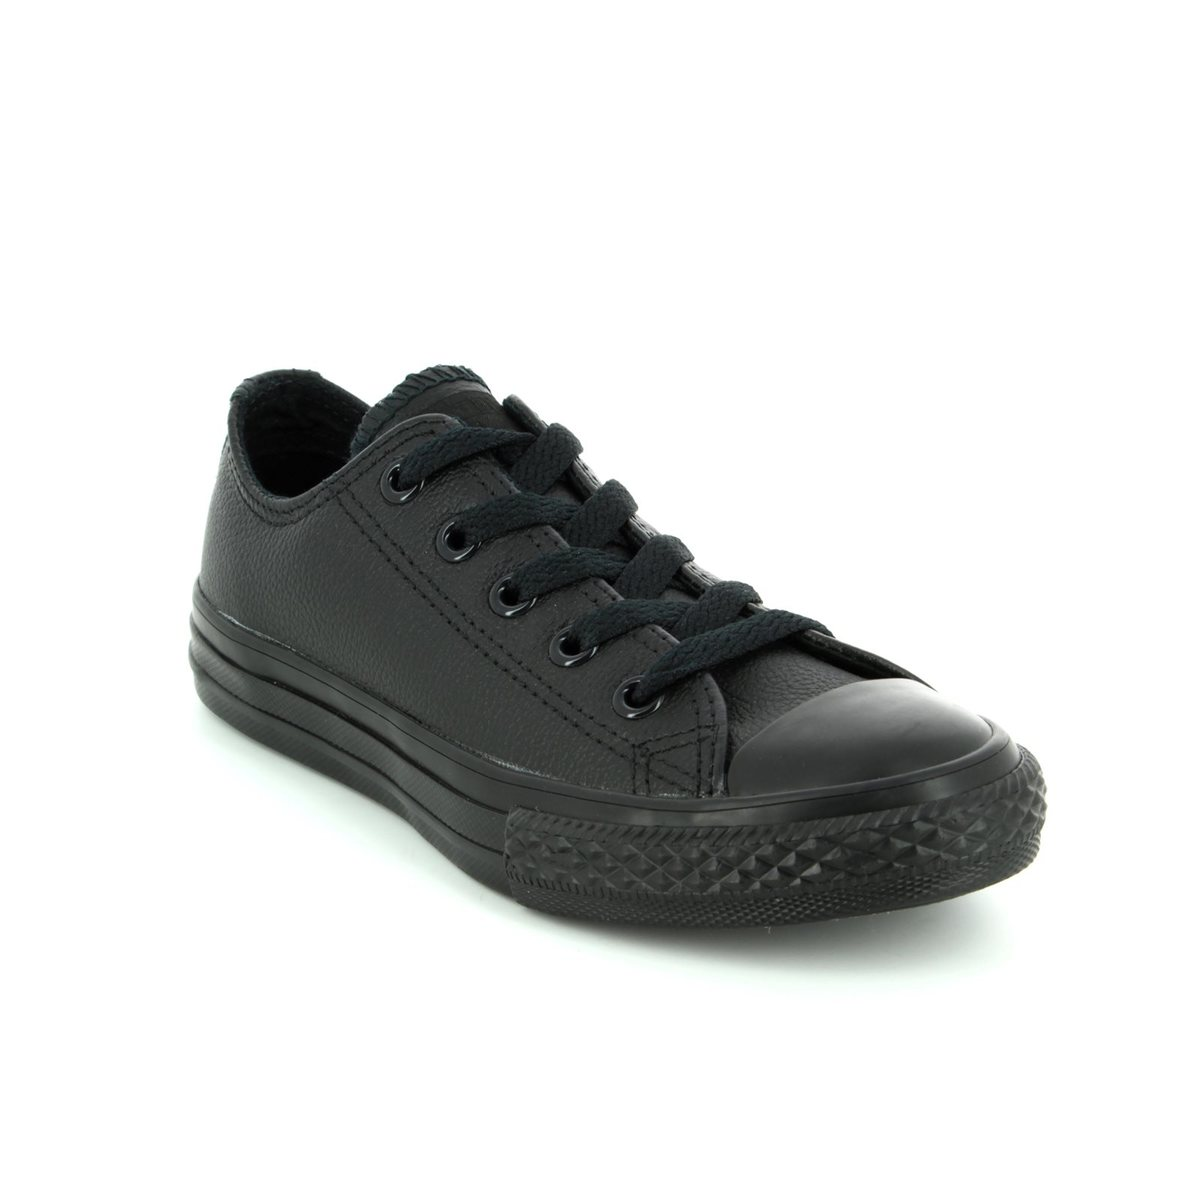 Converse Trainers - Black - 343913C Chuck Taylor Allstar OX Mono Leather